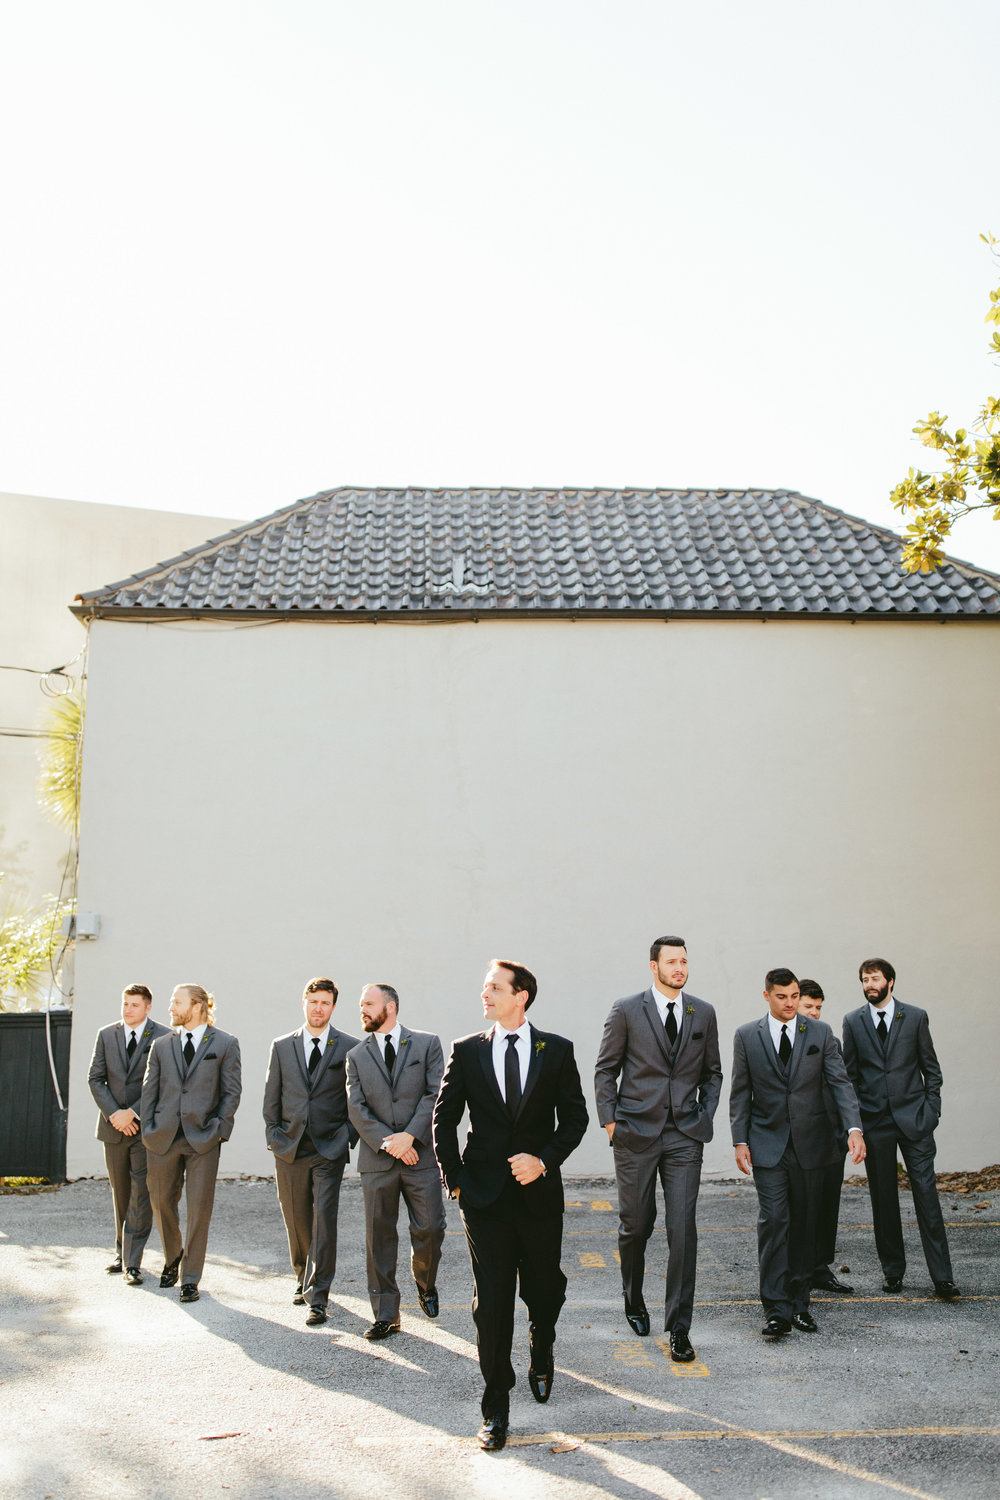 groomsmen, bridal party photo inspiration, black tie bridal party, black tie groom, groomsmen in tux, groomsmen style ideas, Philadelphia wedding, destination wedding, Brooklyn wedding, Brooklyn elopement, Philadelphia elopement, Gadsden house Charleston South Carolina, southern wedding inspiration, unique wedding inspiration, wedding inspiration, destination wedding inspiration, wedding ideas, romantic wedding inspiration, classy wedding ideas